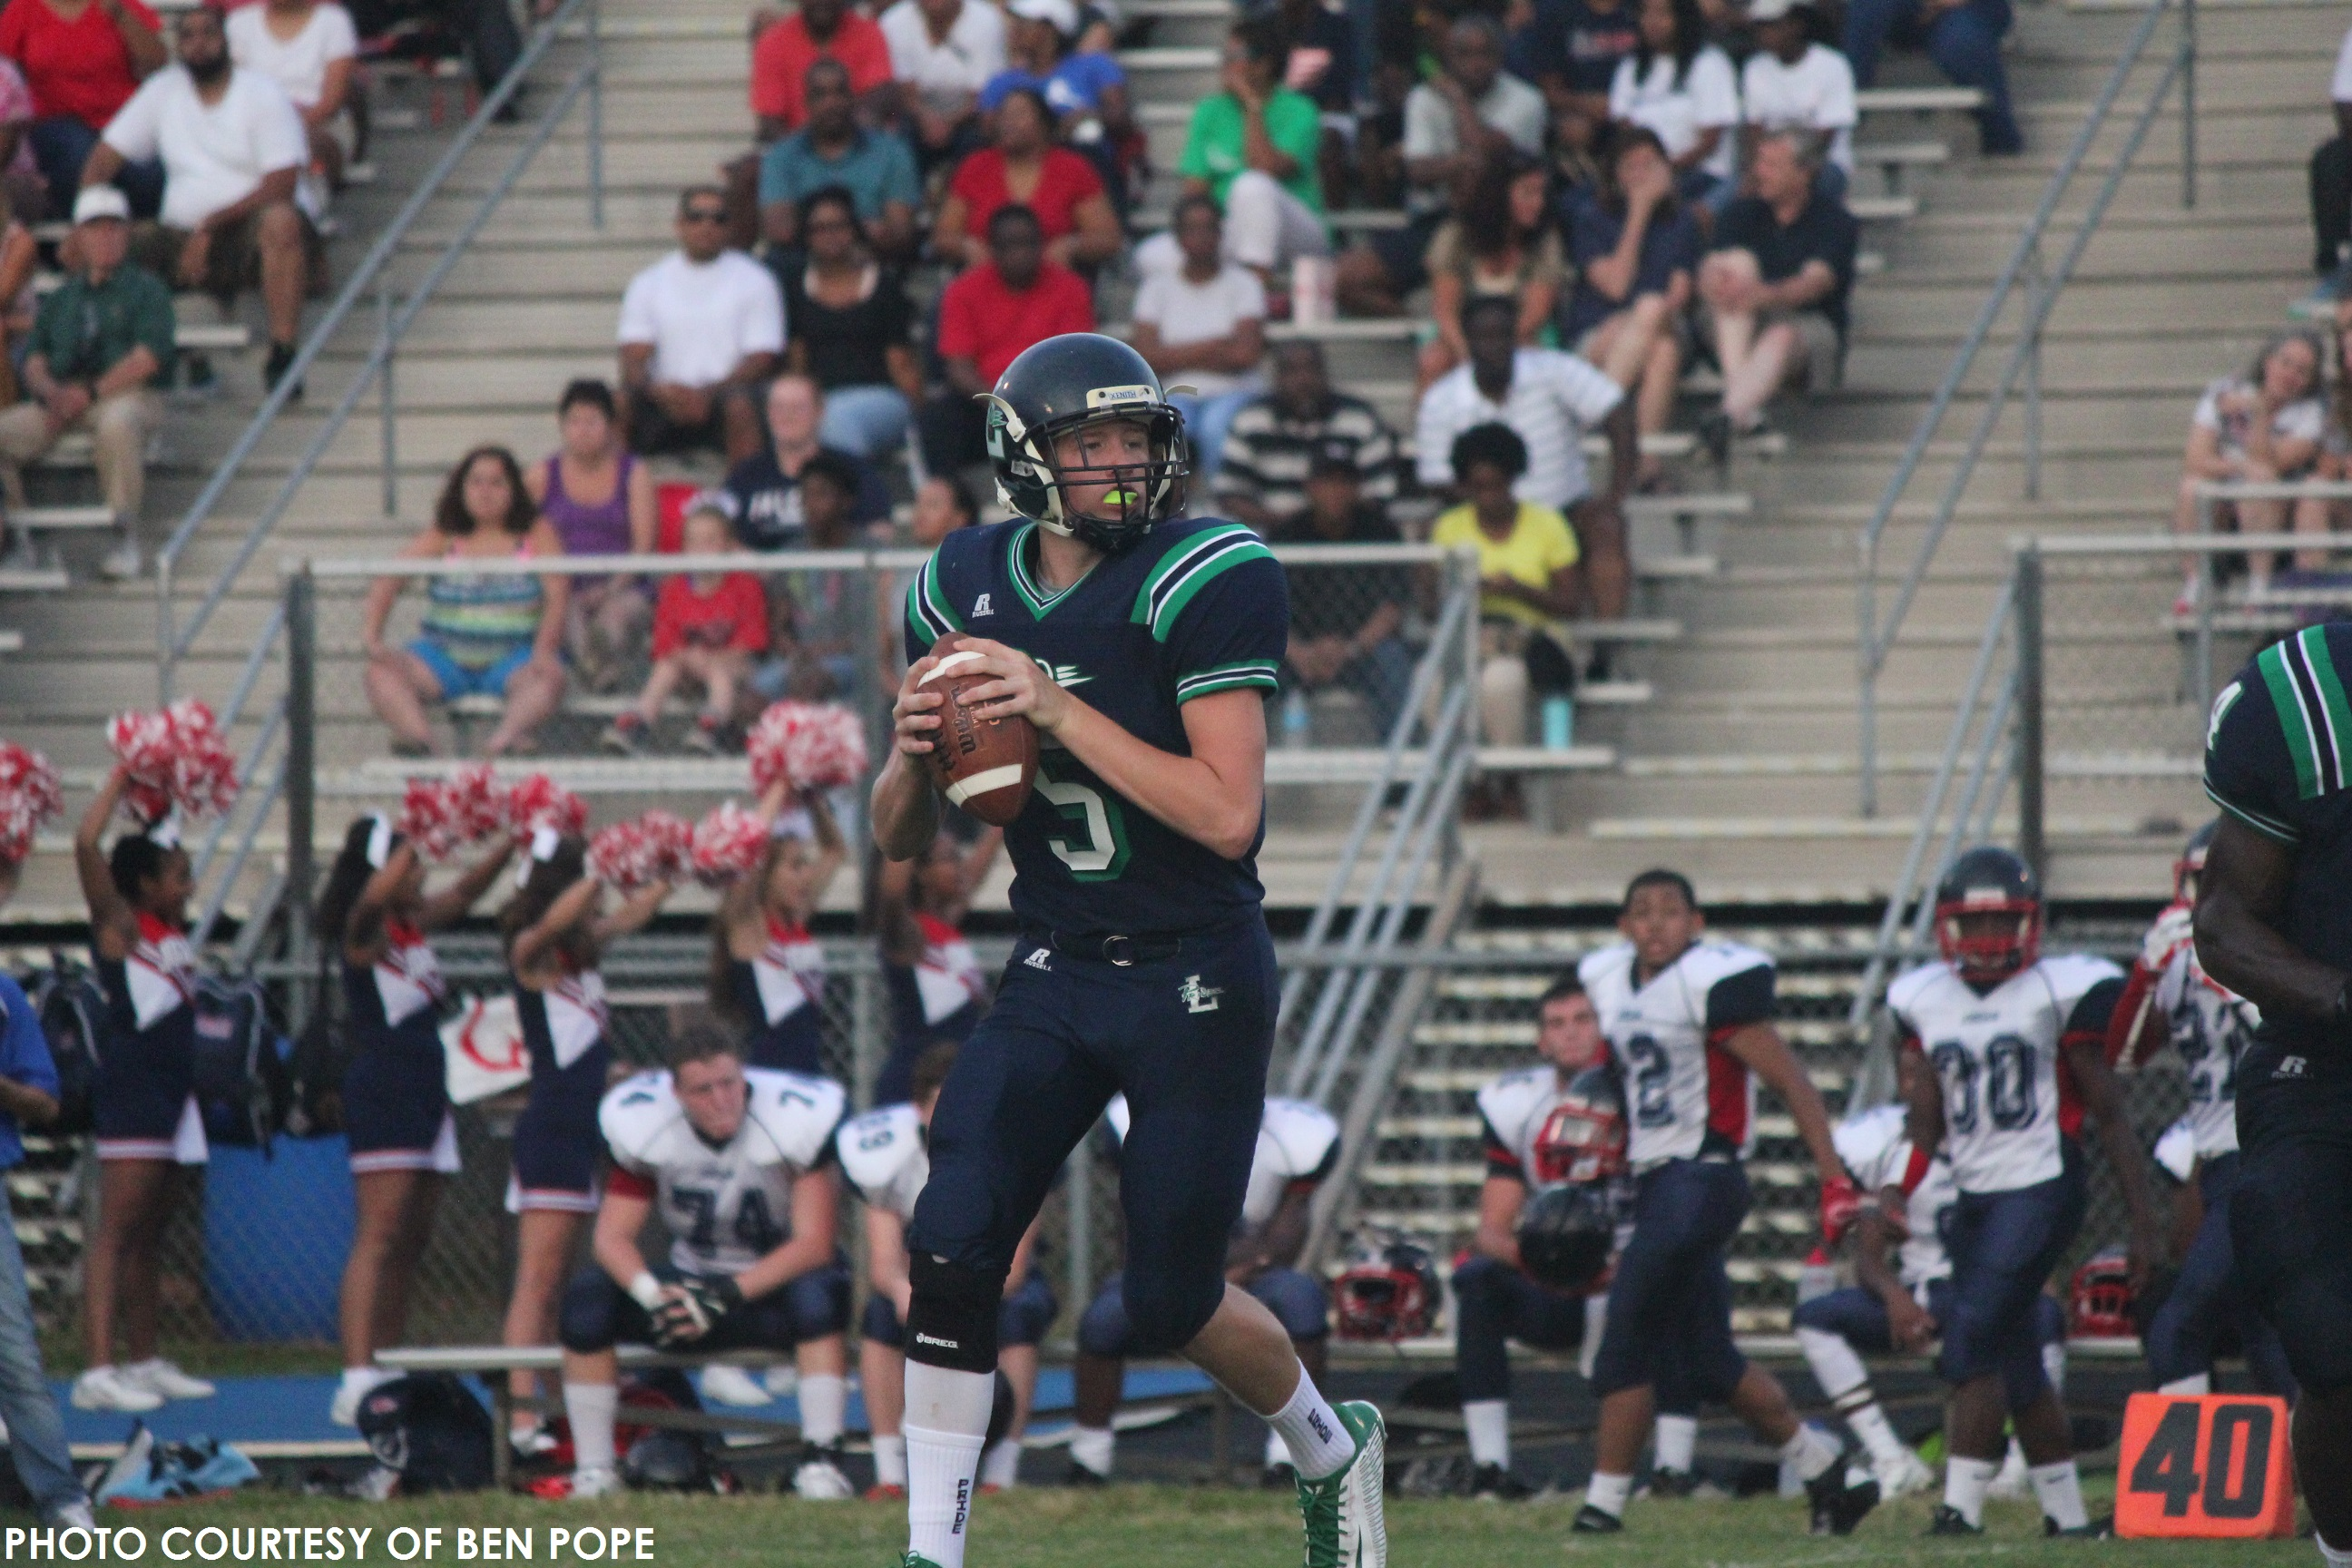 Leesville Football victorious in season opener